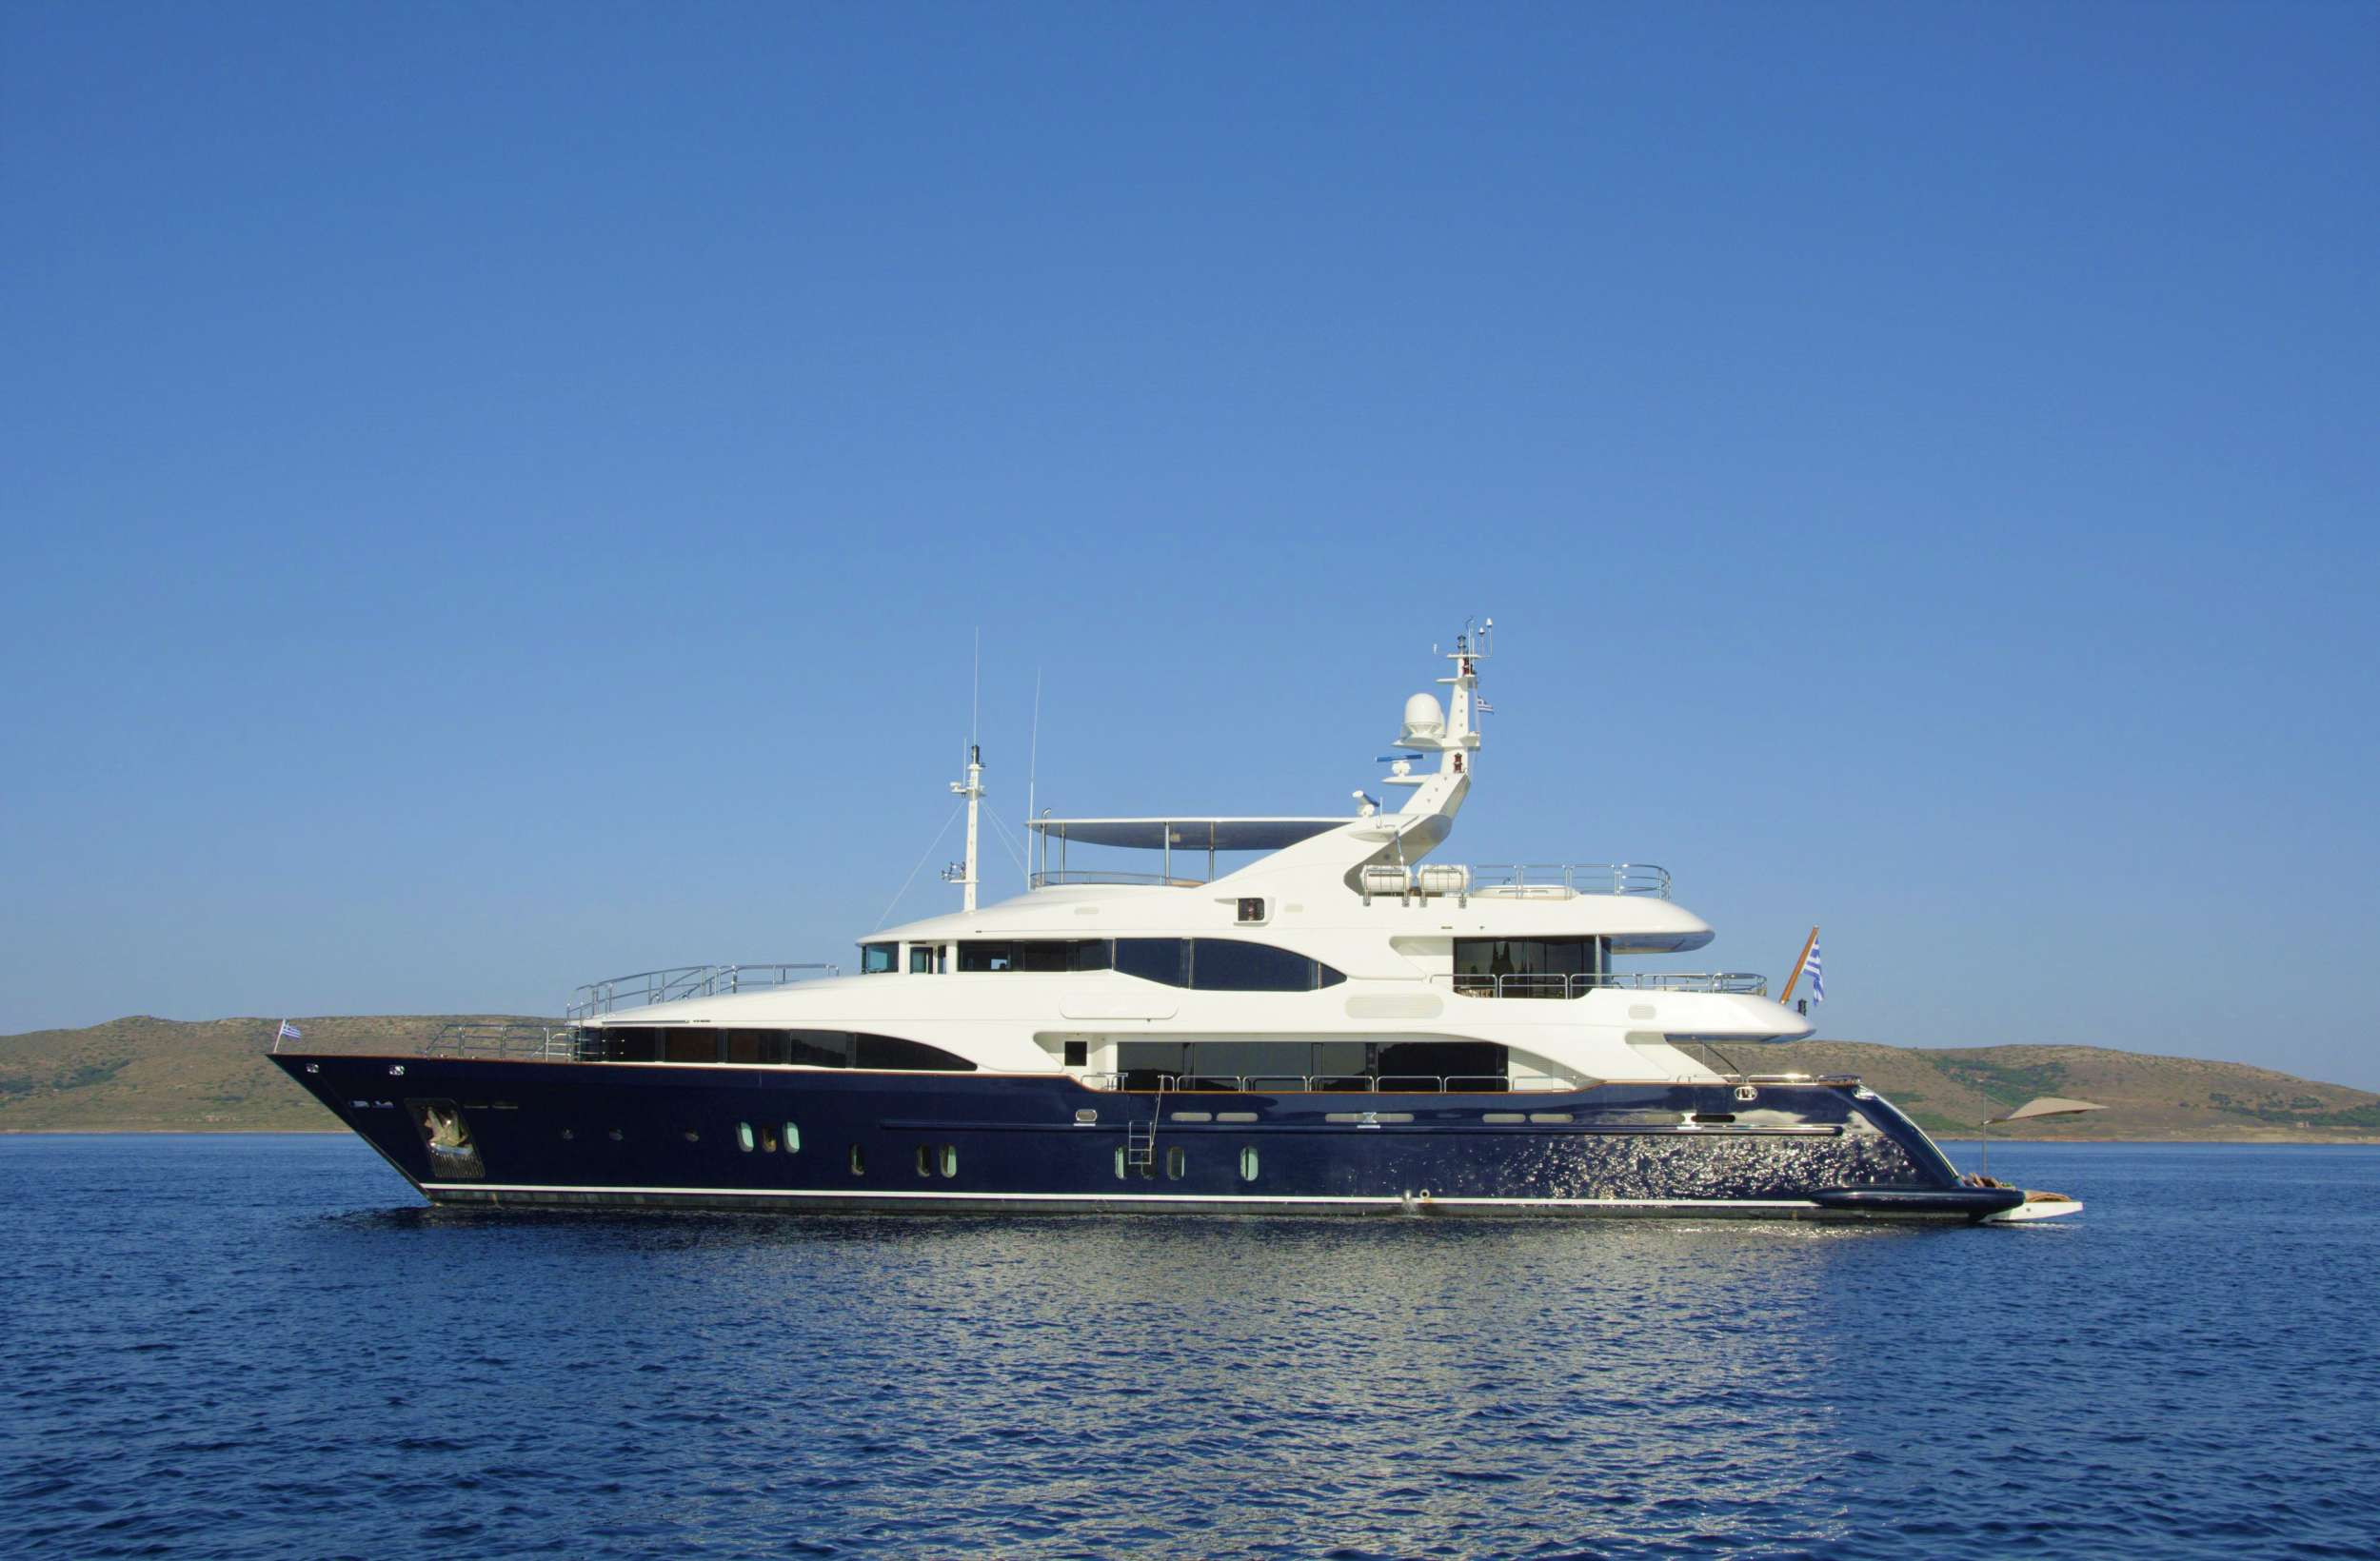 Main image of GRANDE AMORE yacht